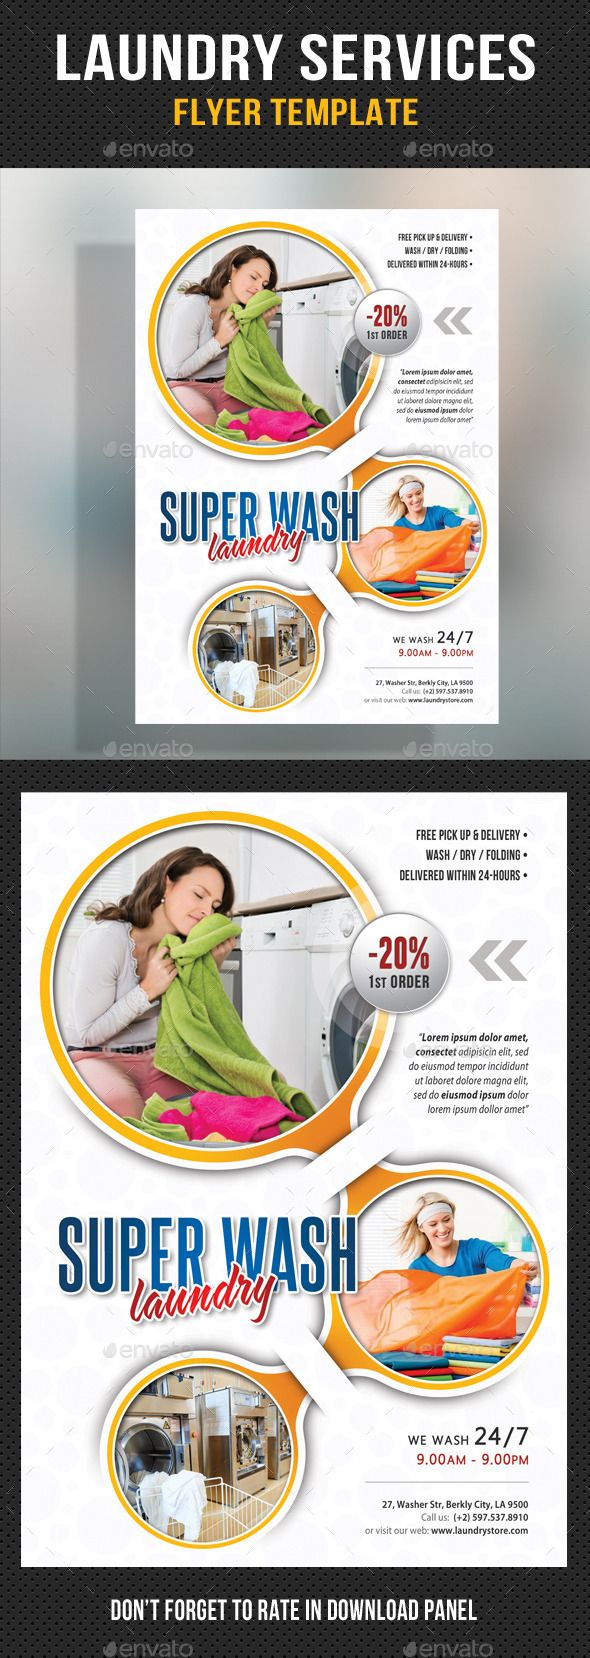 34 best laundry flyer images on pinterest creative letters and laundry services flyer template v02 corporate flyers pronofoot35fo Image collections